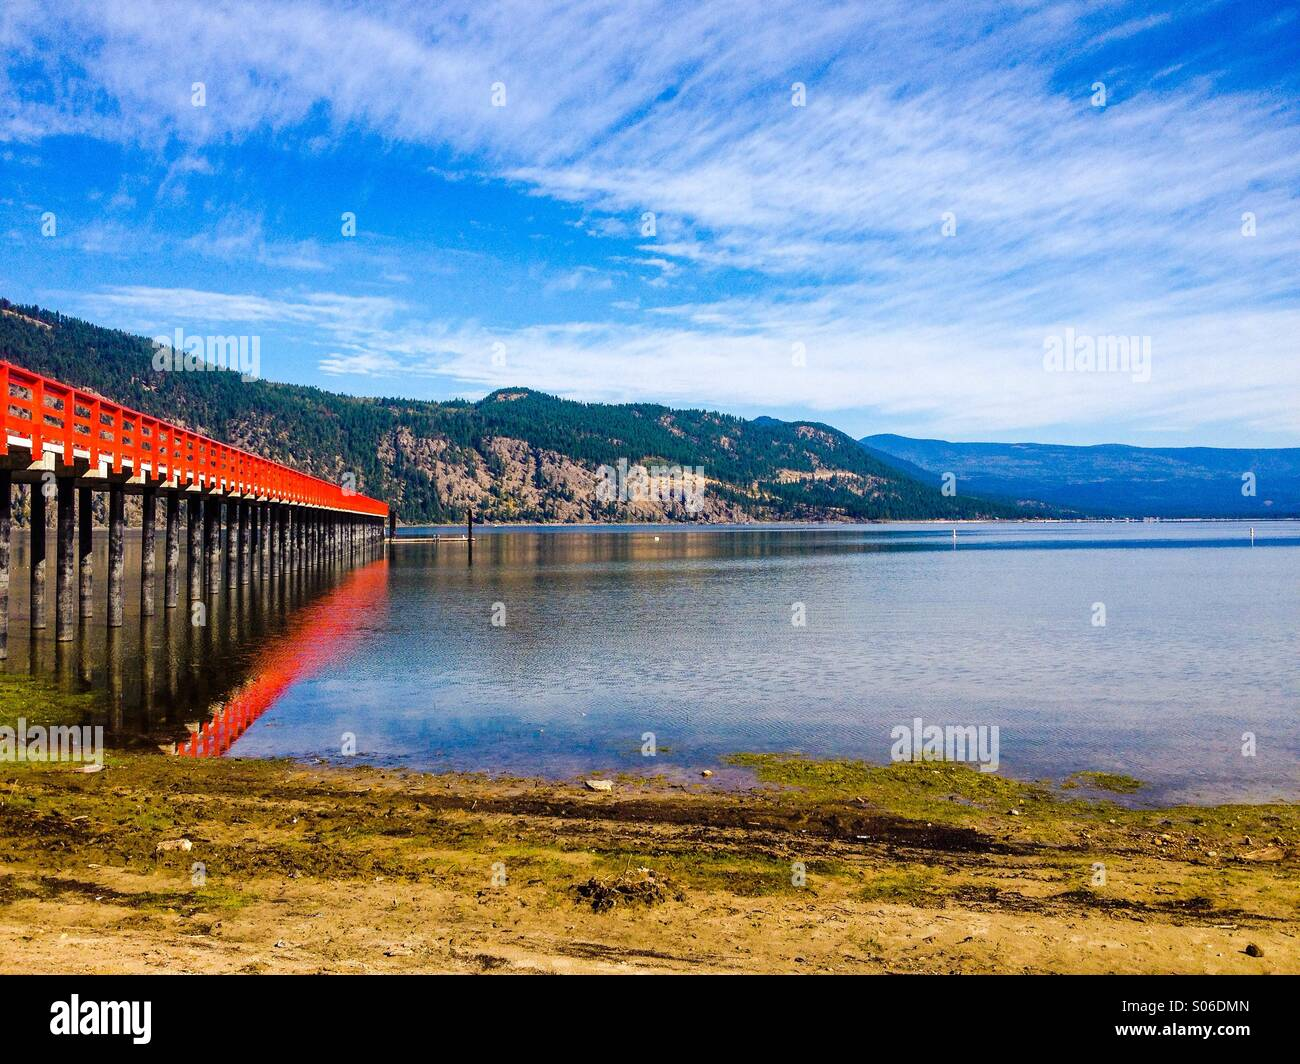 Red pier stretching out into the lake on a late summer day, in Chase, British Columbia. - Stock Image